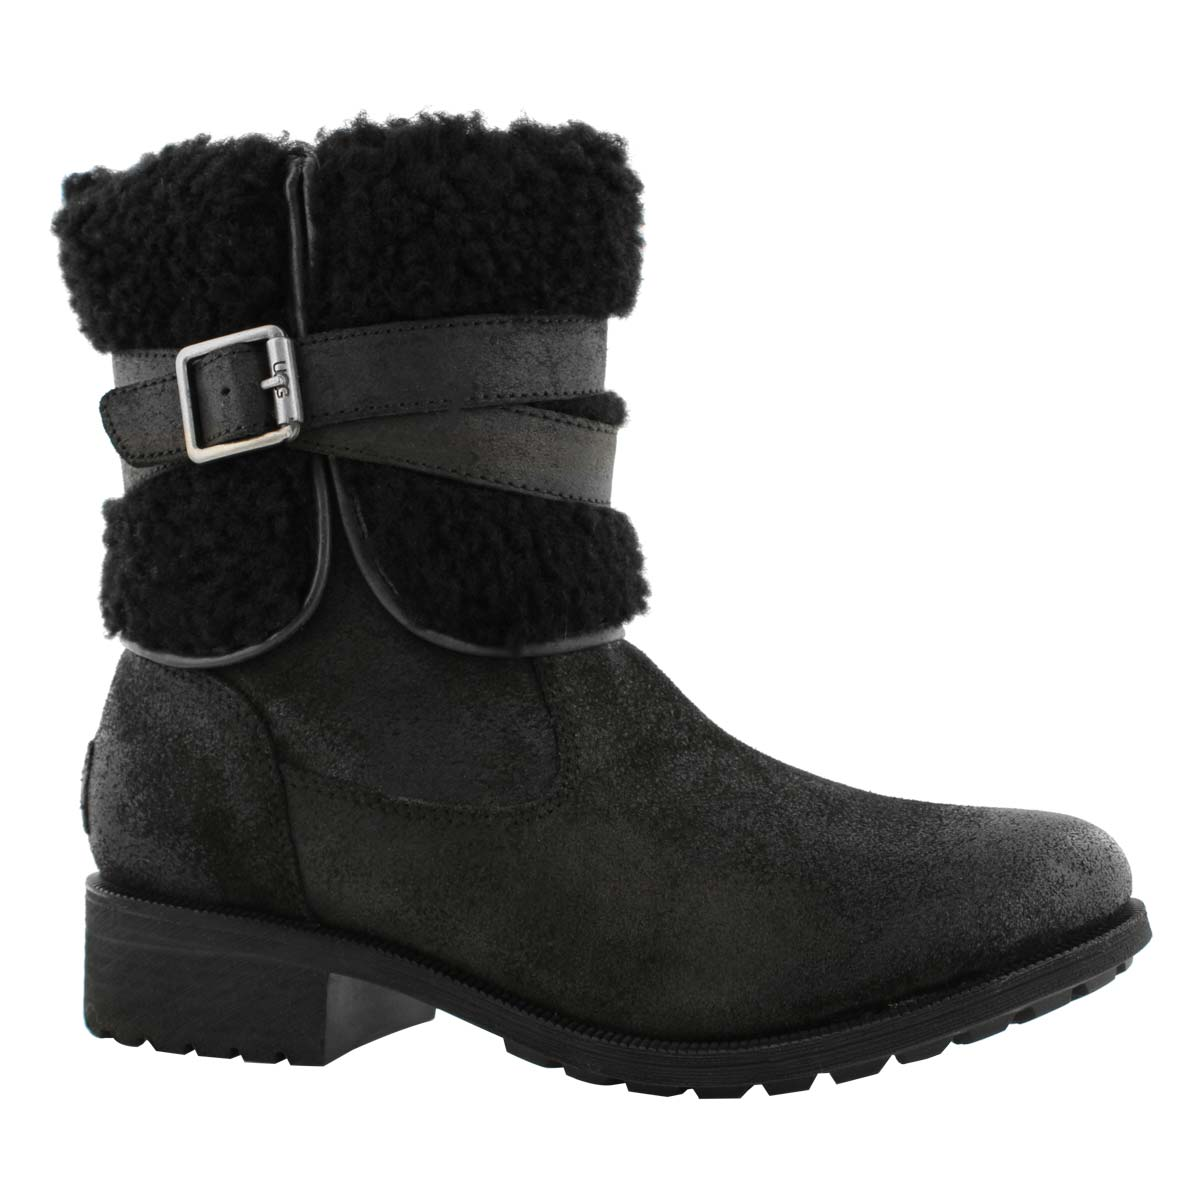 Lds Blayre III black wtpf ankle boot